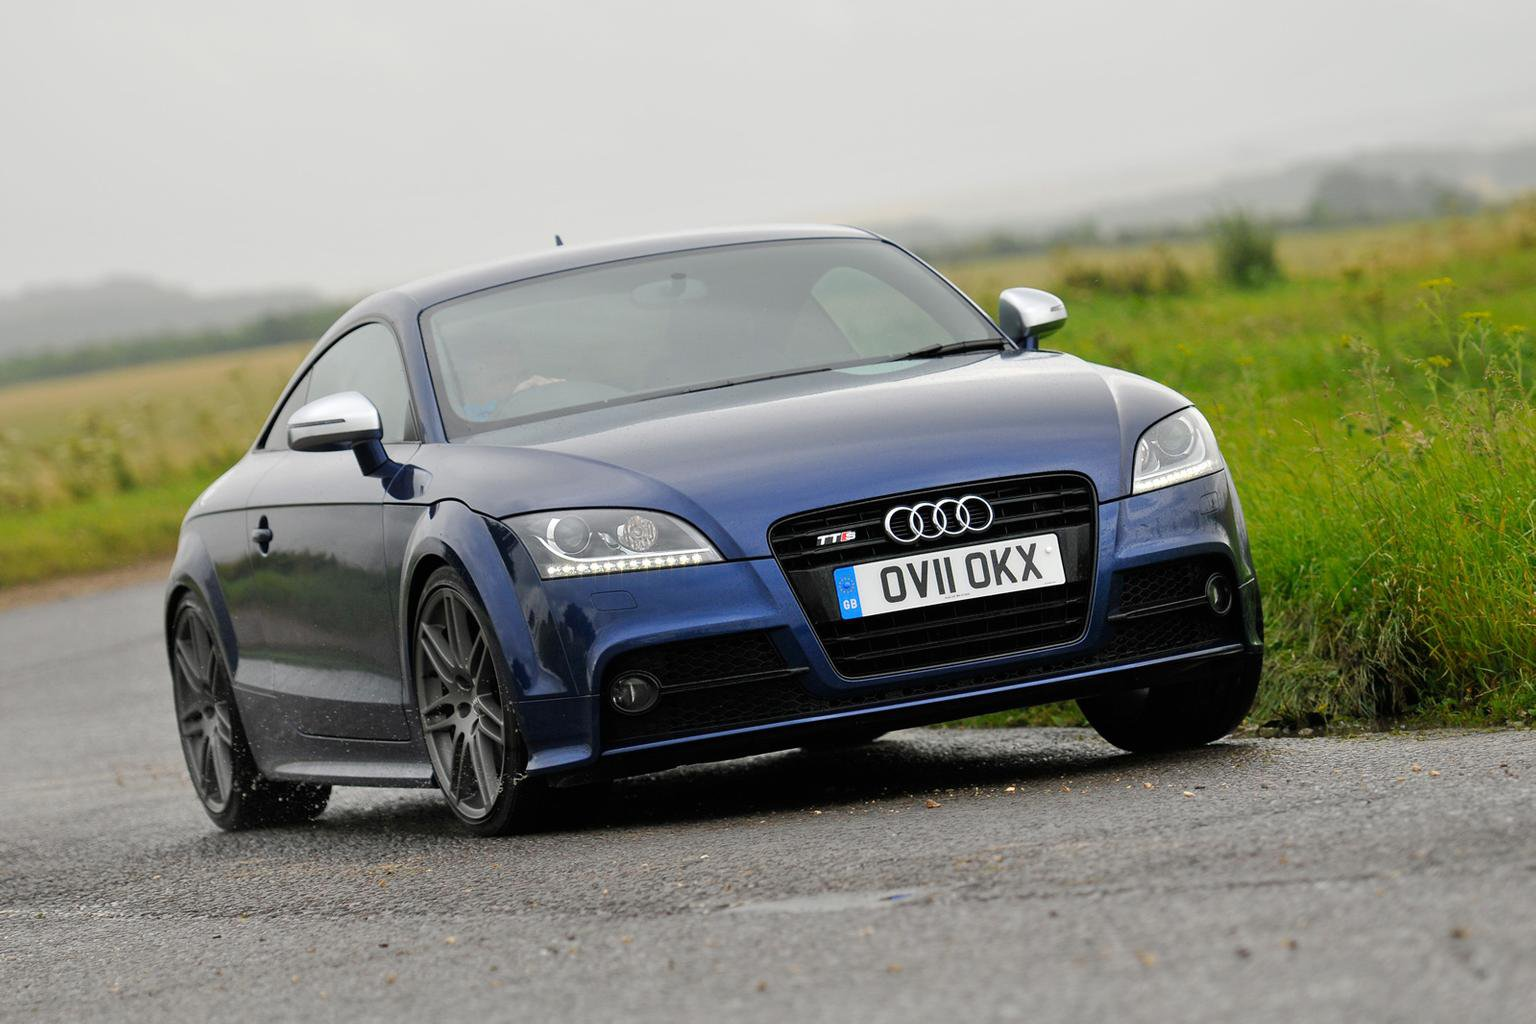 Used car of the week: Audi TT